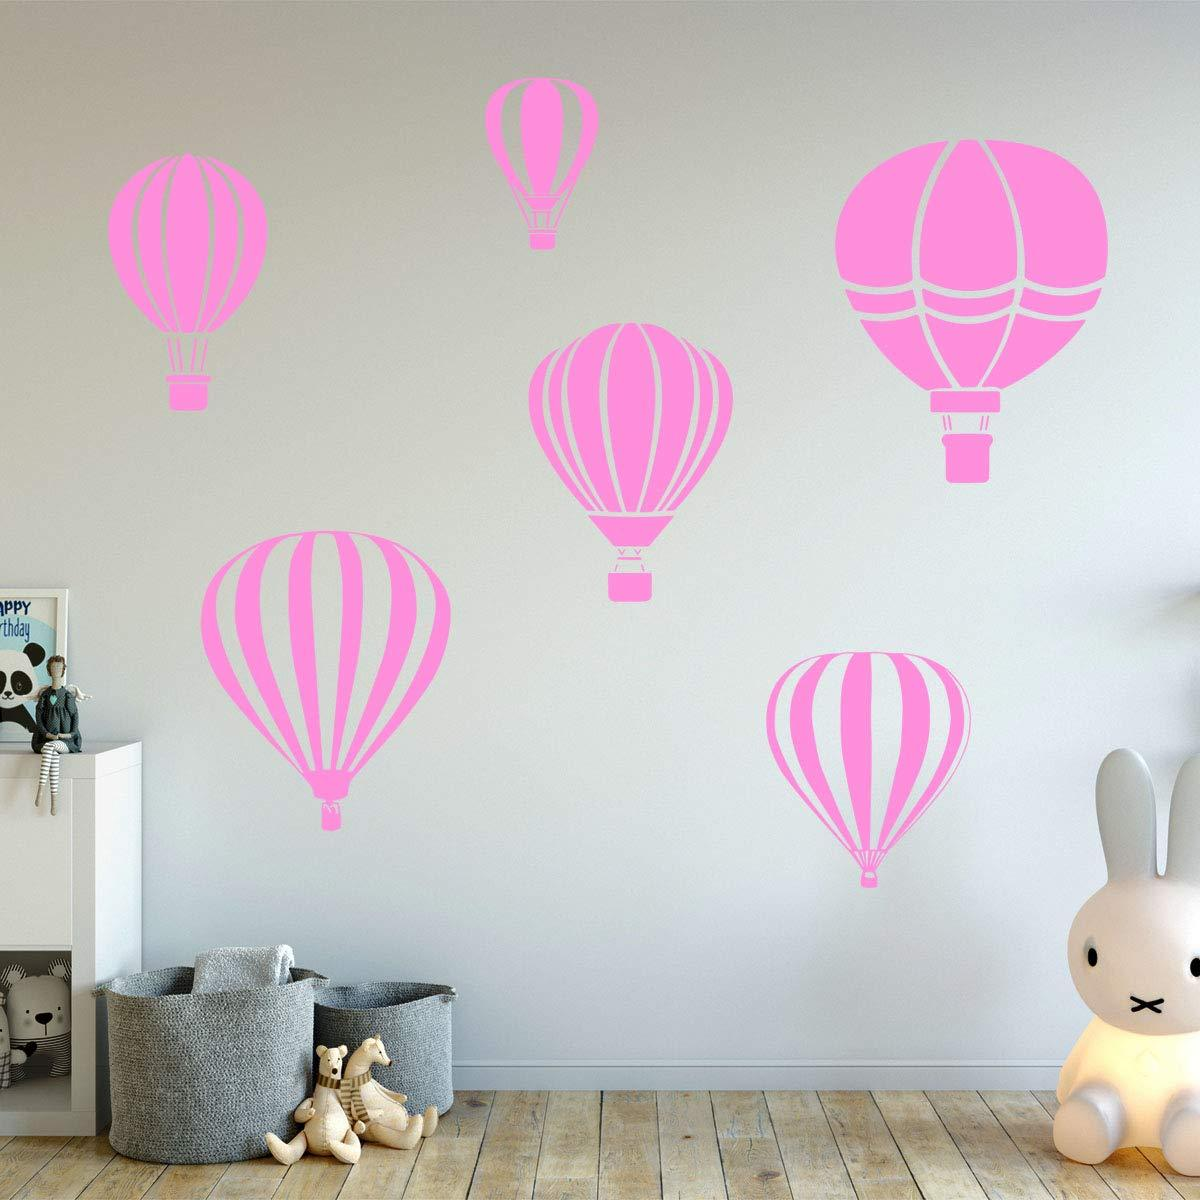 VWAQ Hot Air Balloon Decals for Walls - Pack of 6 Vinyl Stickers - Nursery Decor - VWAQ Vinyl Wall Art Quotes and Prints